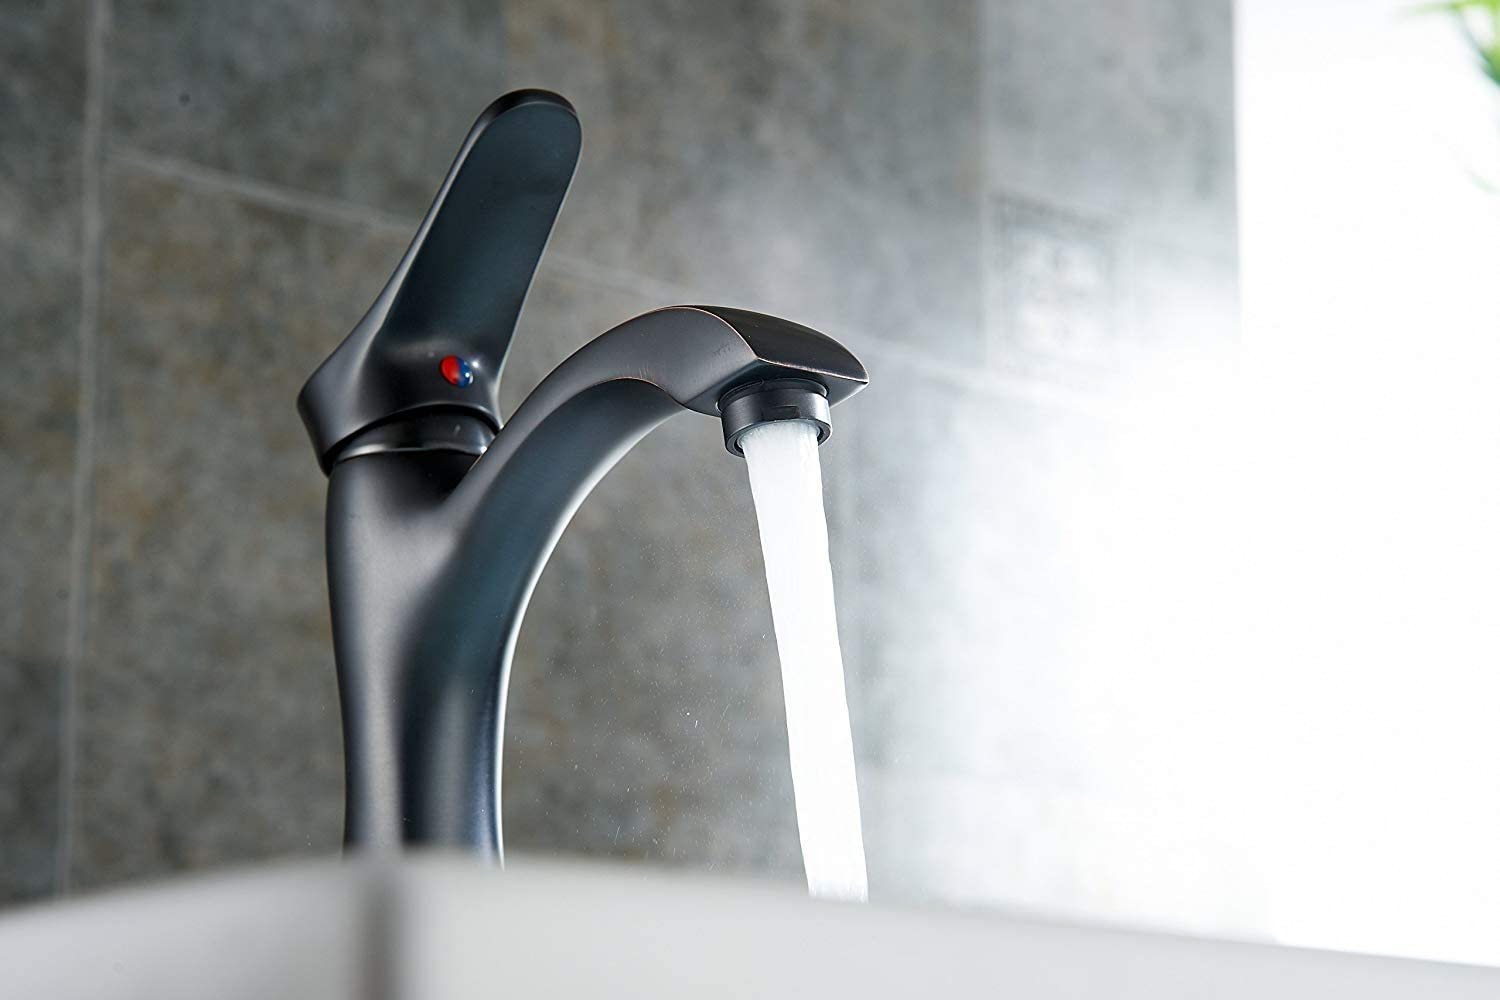 BWE Bathroom Sink Faucet with Supply Line Oil Rubbed Bronze Single Handle One Hole Lavatory Faucets Basin Mixer Tap - -